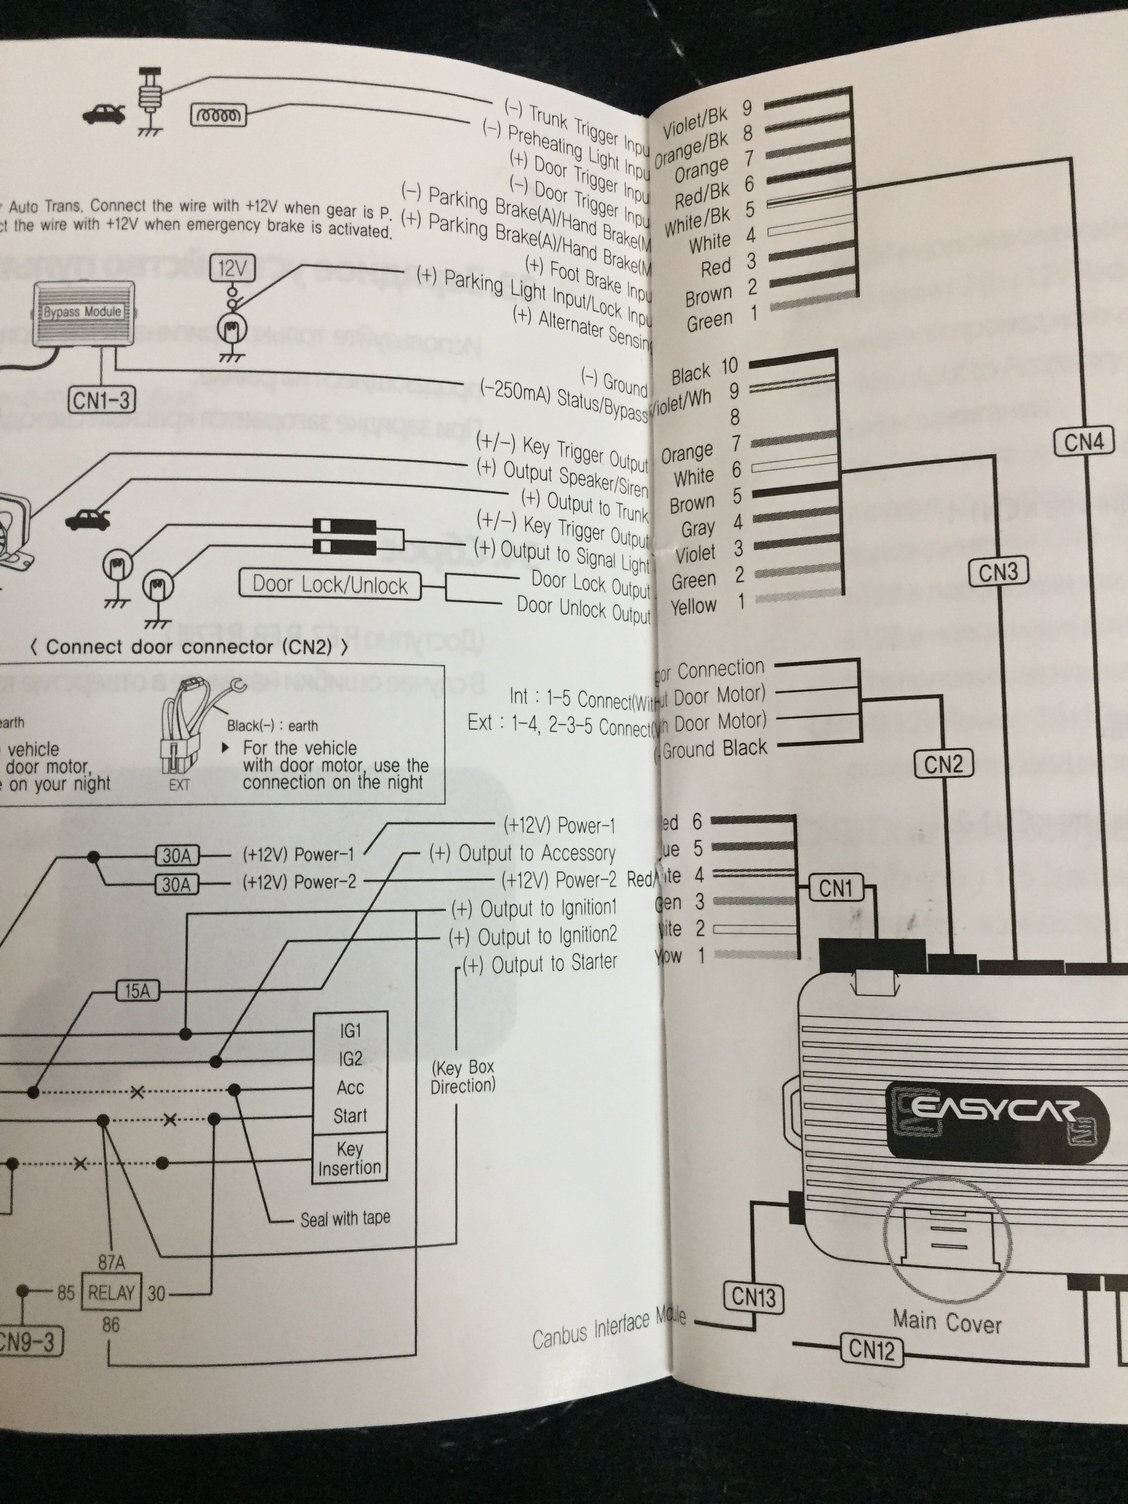 Remote Starter Problems Wiring Diagram Needed Page 2 Chevy